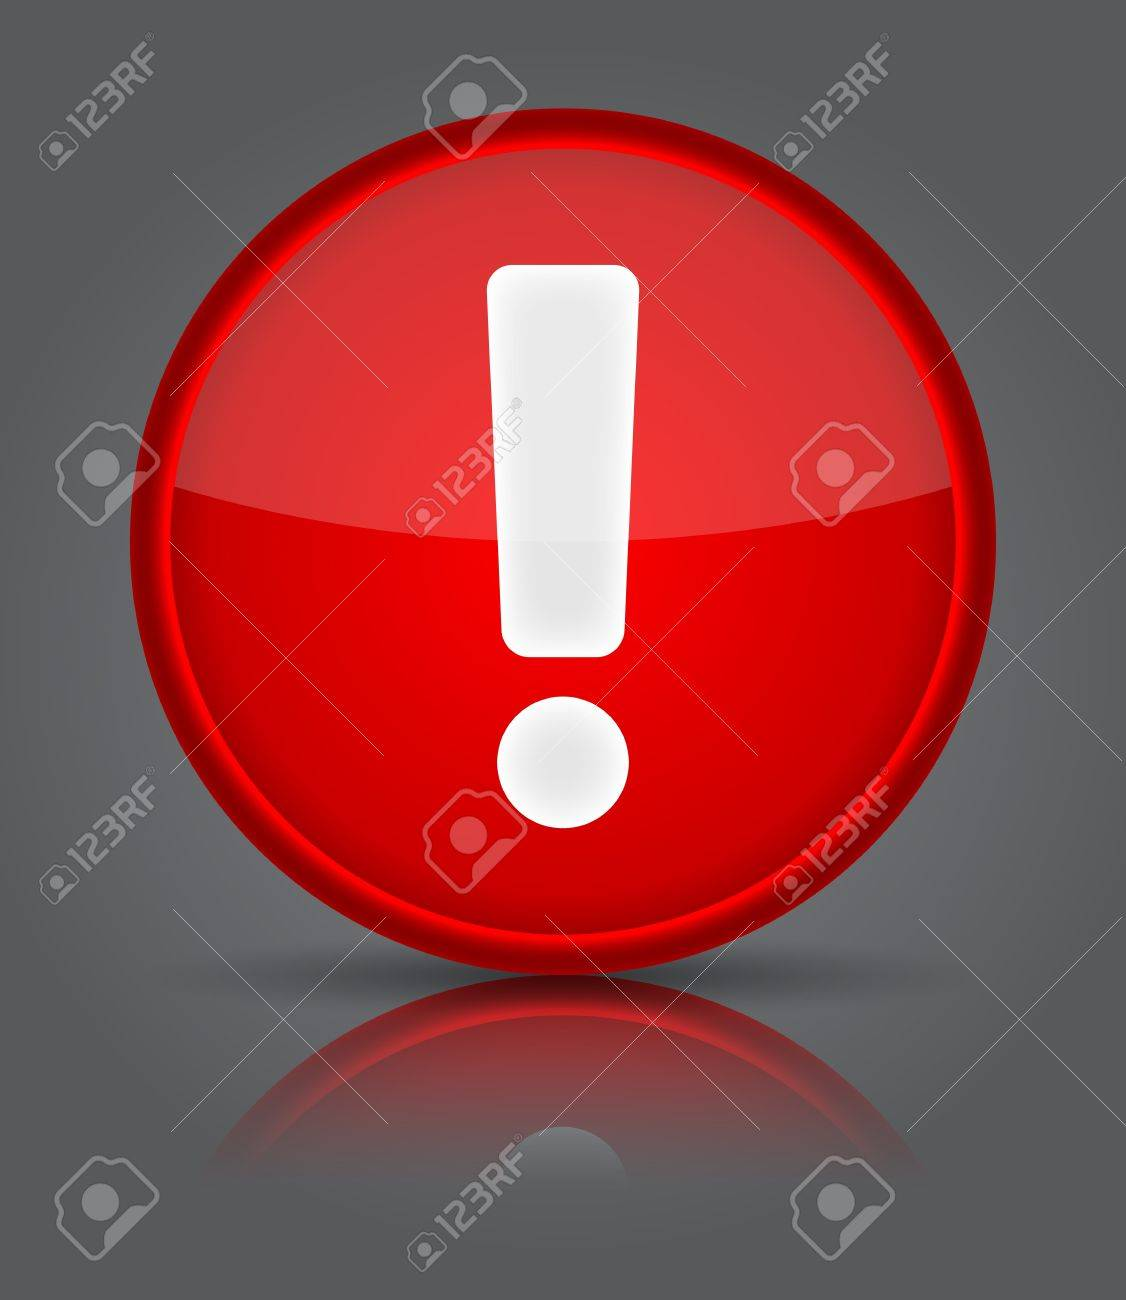 Red glossy web button with attention warning sign. Shape icon on grey background. Stock Vector - 20502094